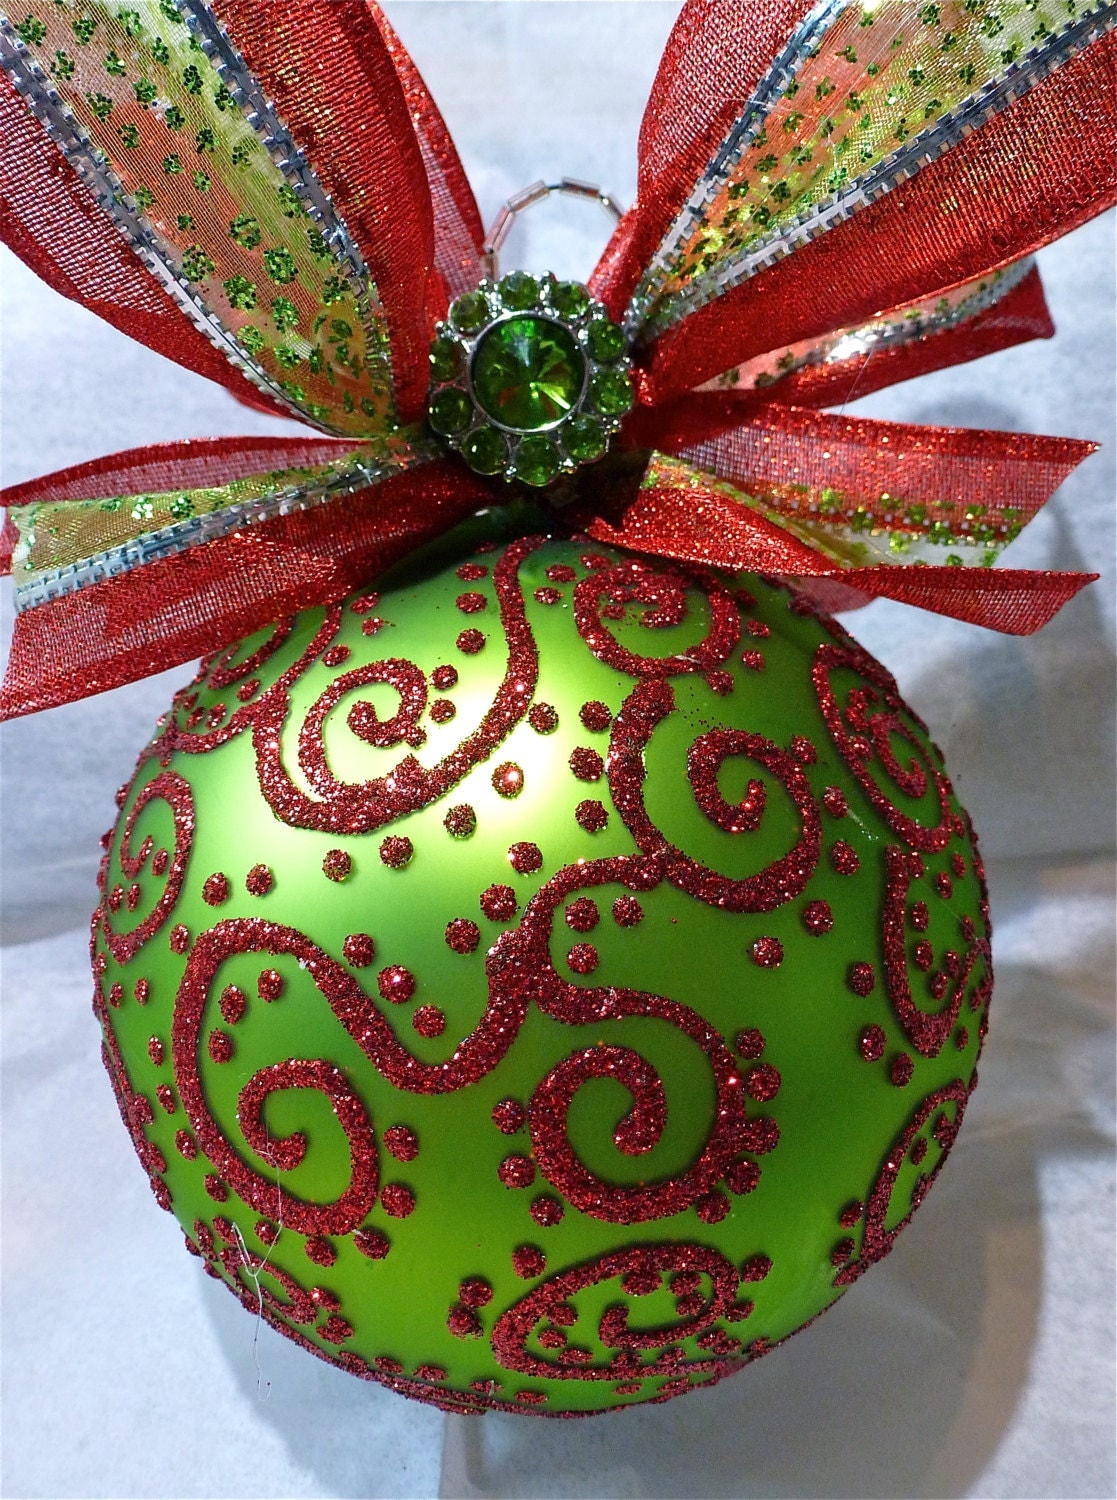 Glitter glass ornament